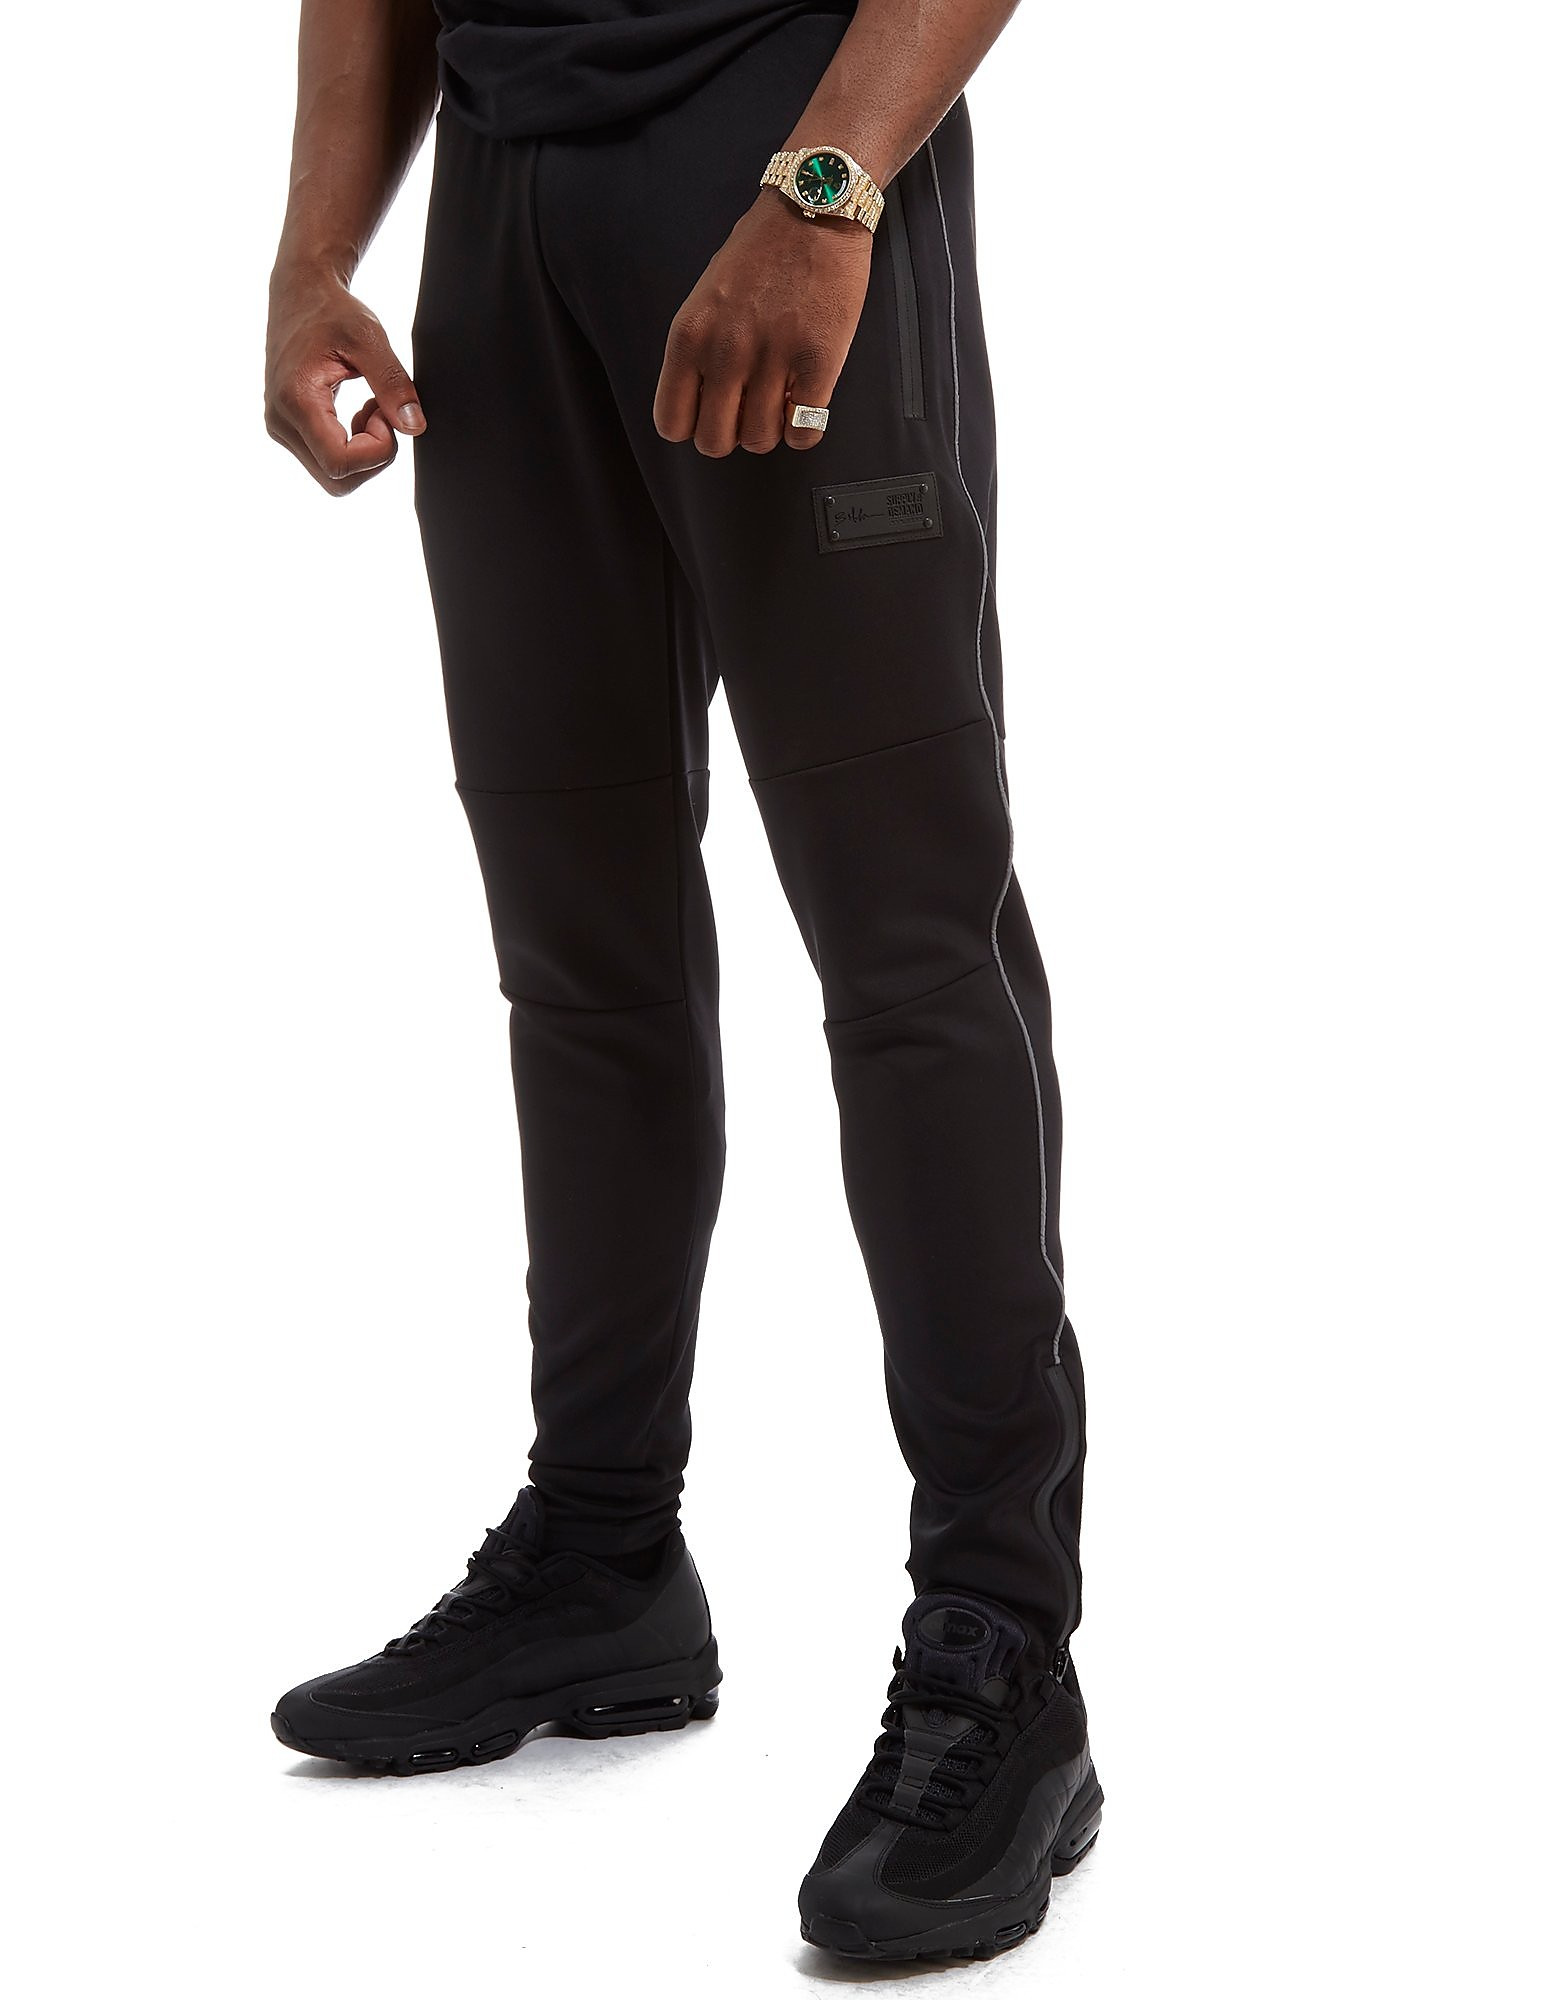 Supply & Demand x Bugzy Malone Technic Joggers - Only at JD - noir, noir